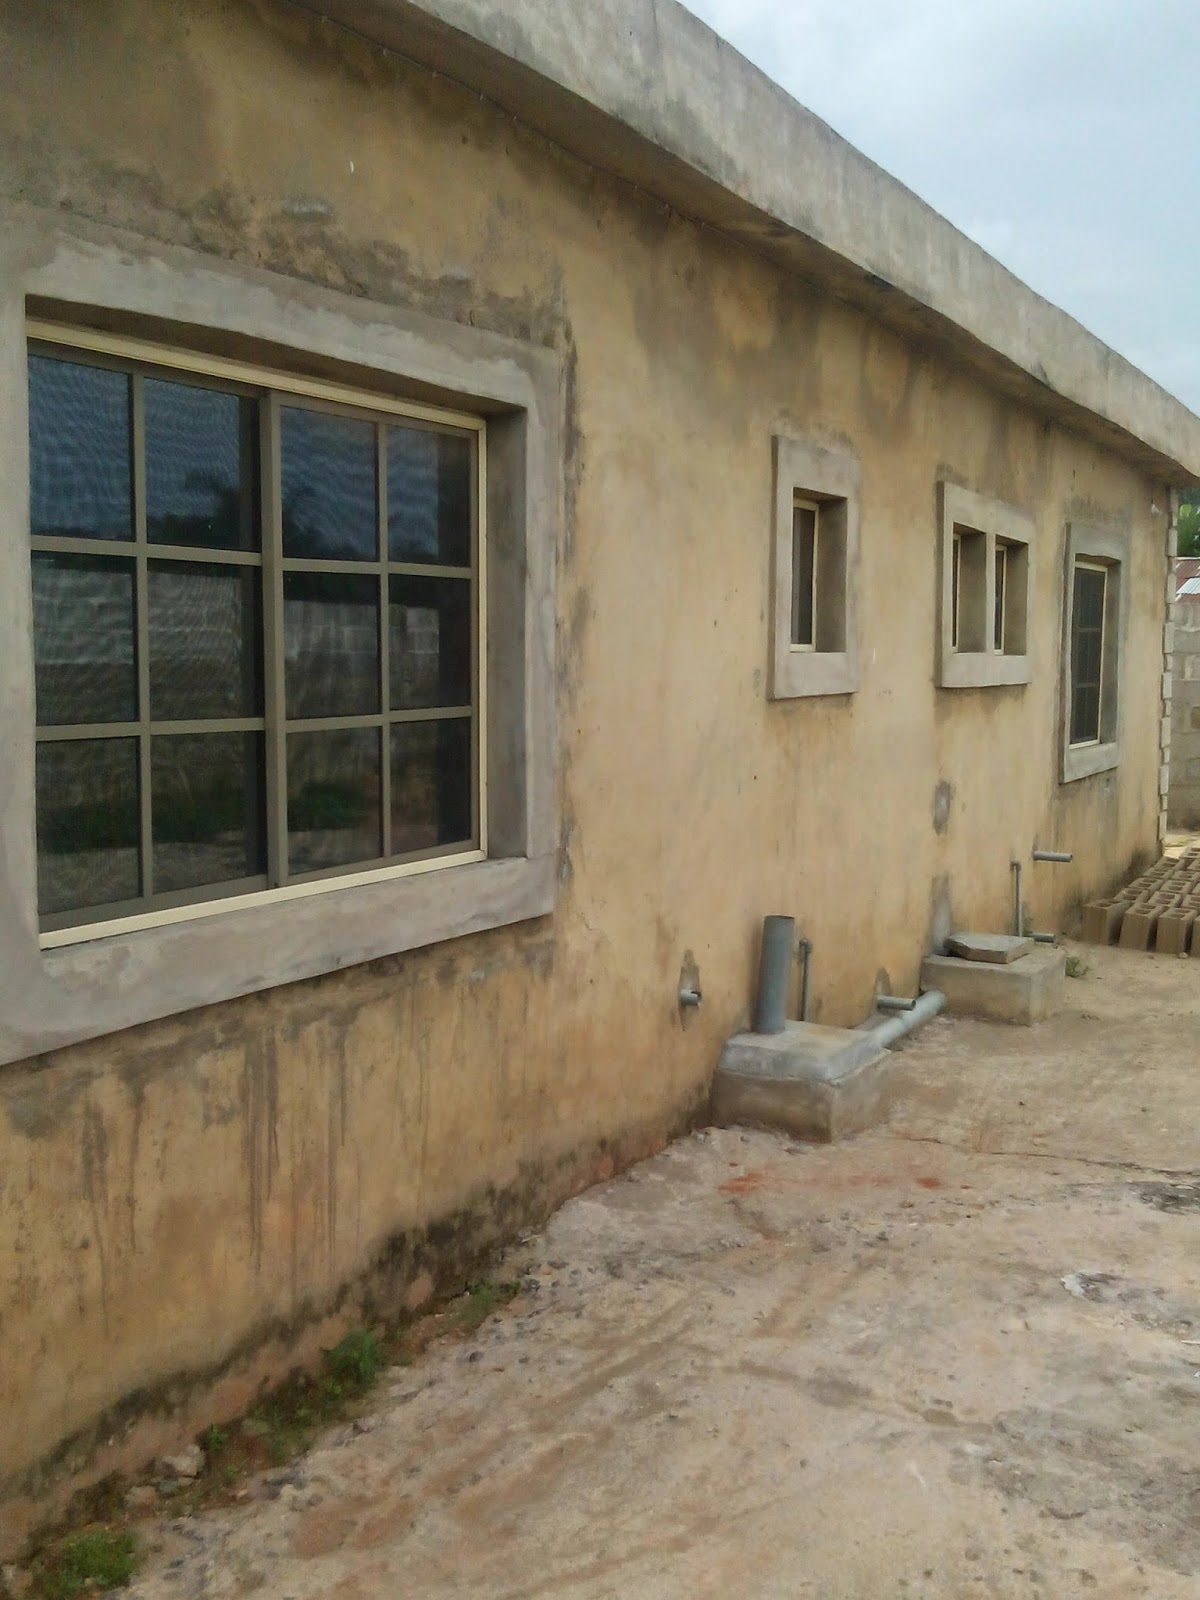 3 bedroom flat for rent in ota,ogun state